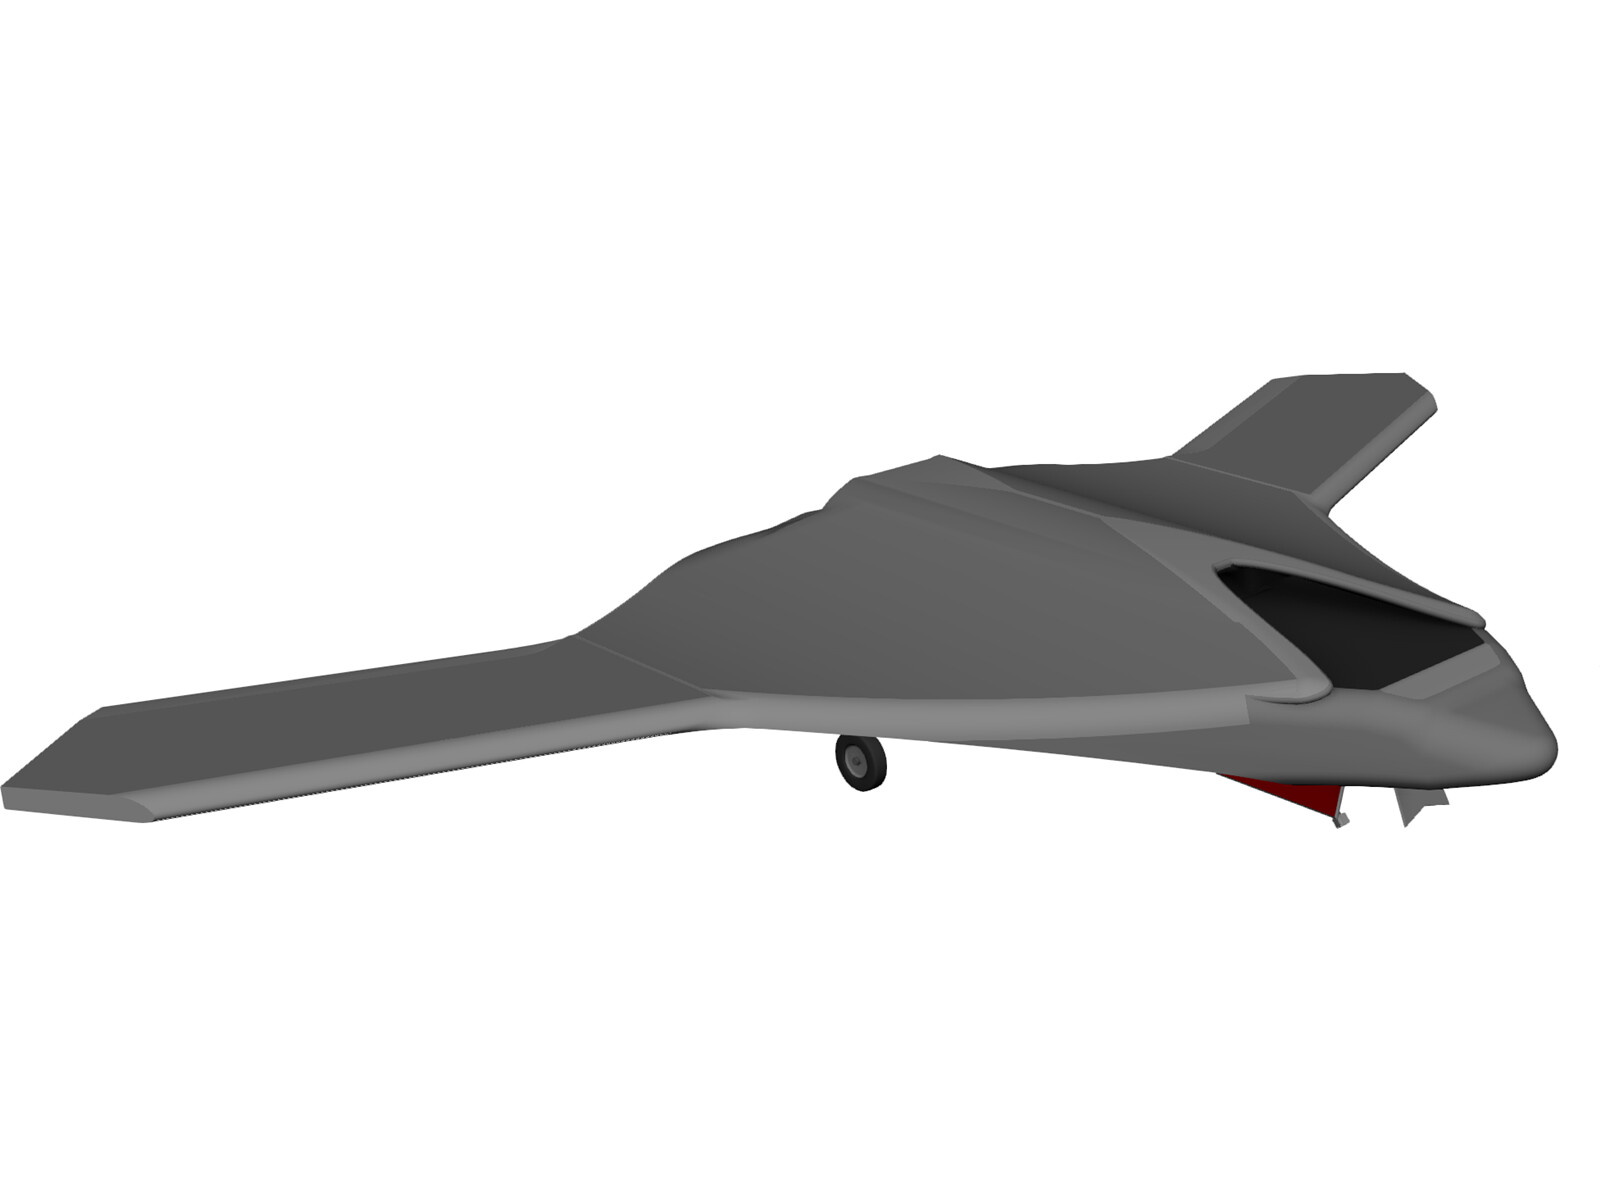 X-47B Unmanned Drone 3D CAD Model